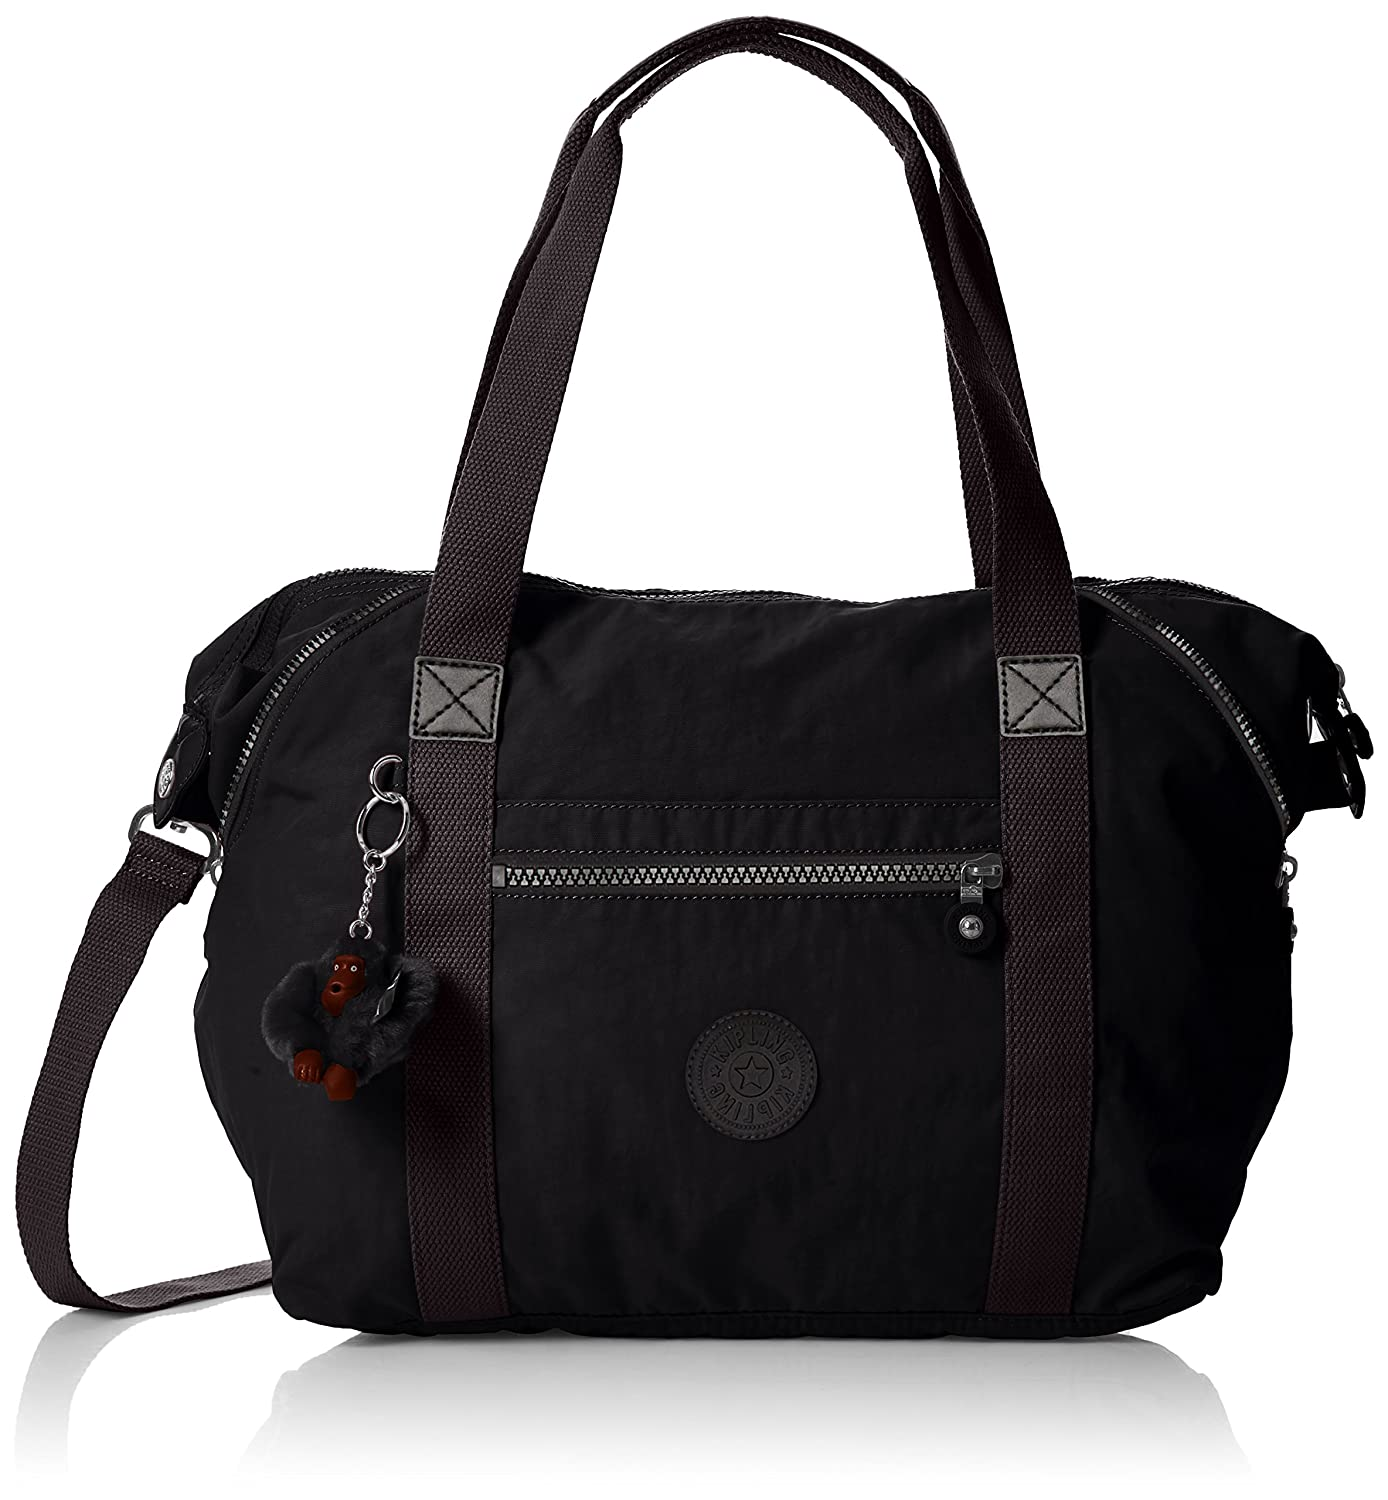 Black (True Black) Kipling Women's Art Crossbody Bag